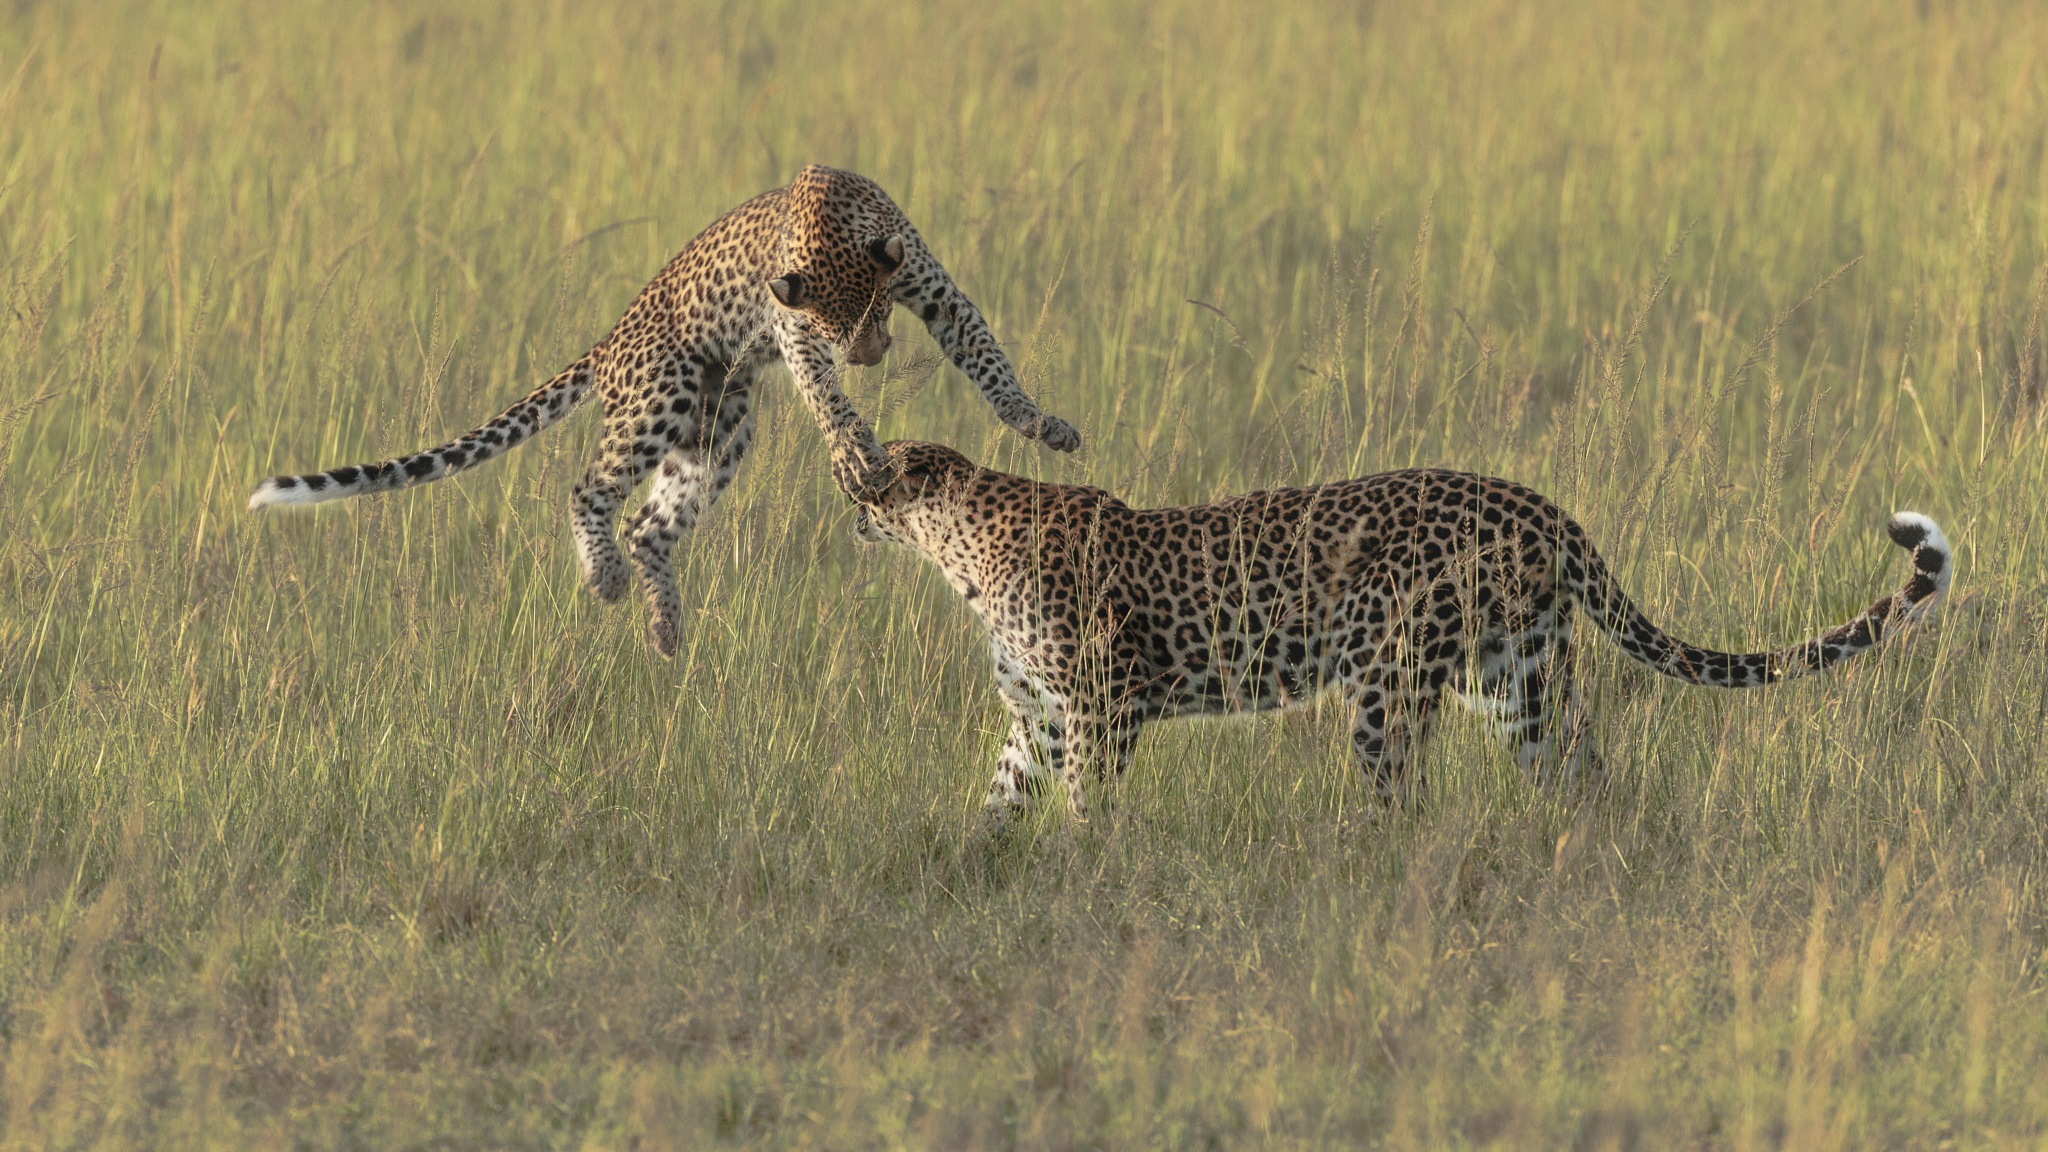 Leopard cub with mom. by Hussain Nalwala